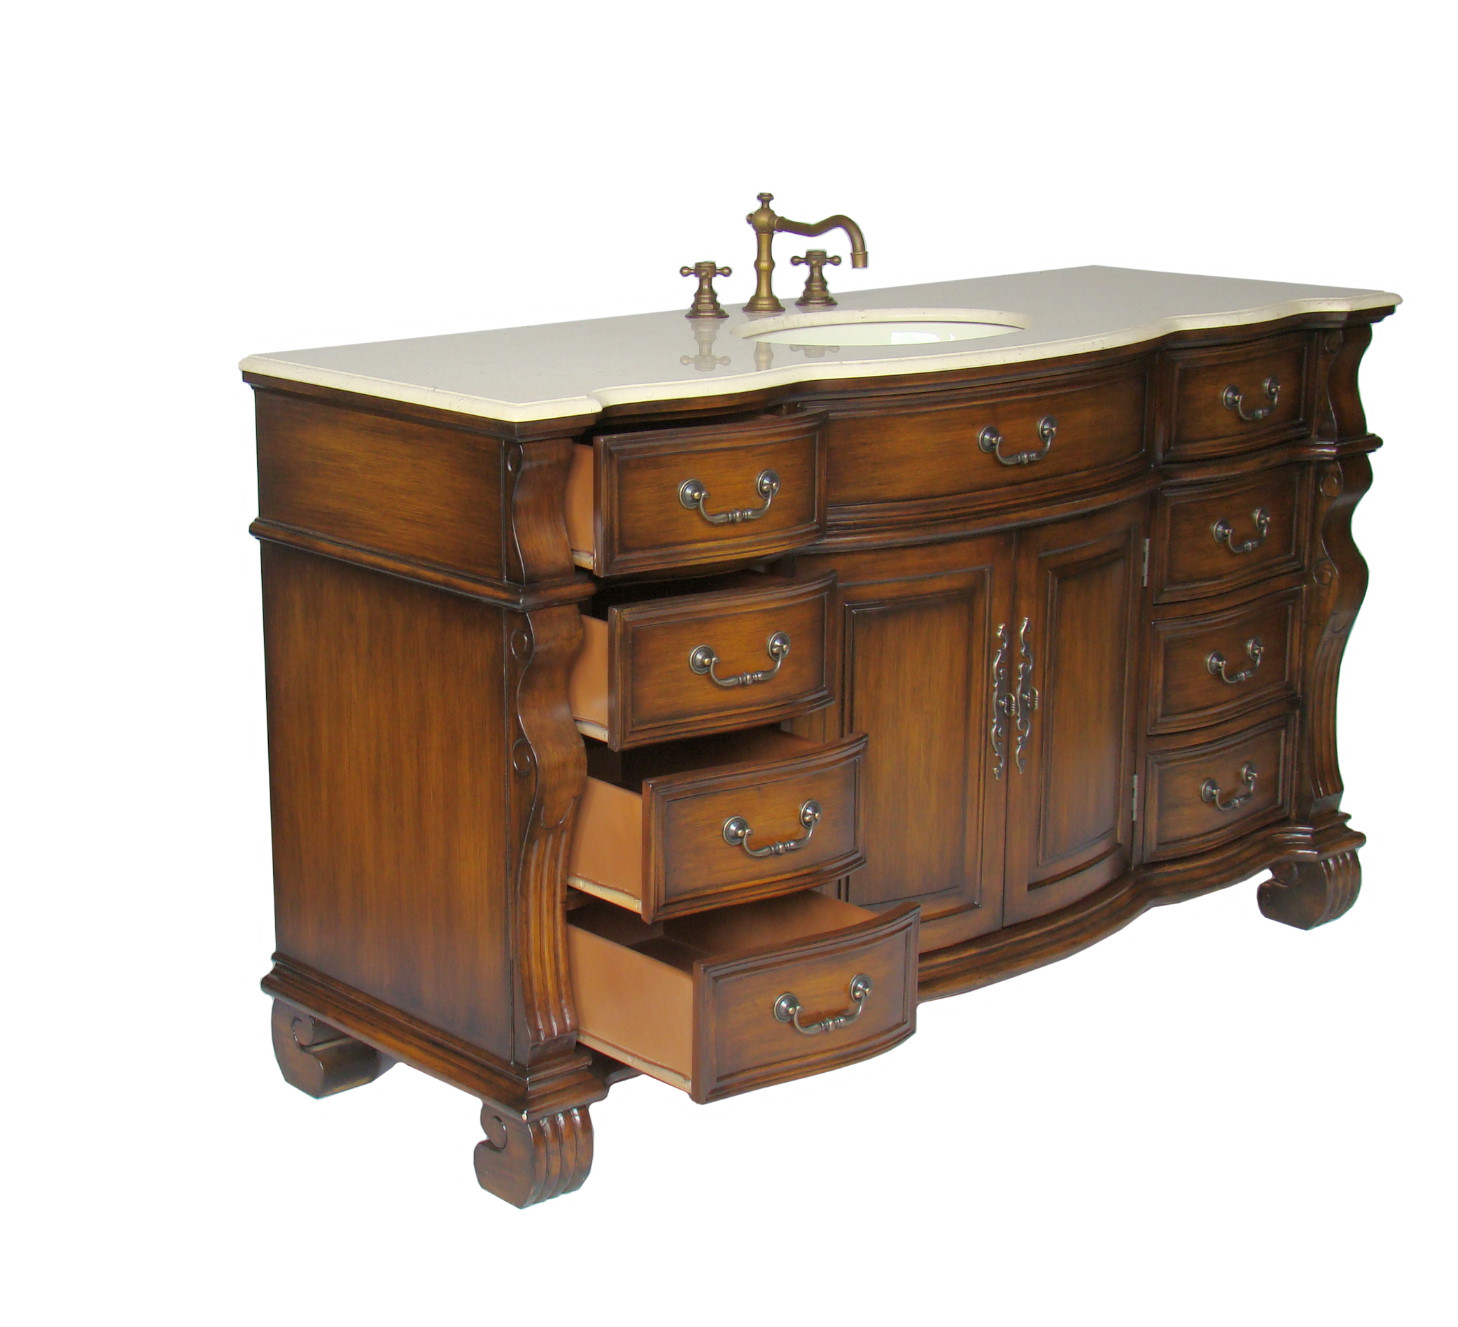 60 Inch Ohio Vanity Bathroom Vanity Sale Single Sink Vanity